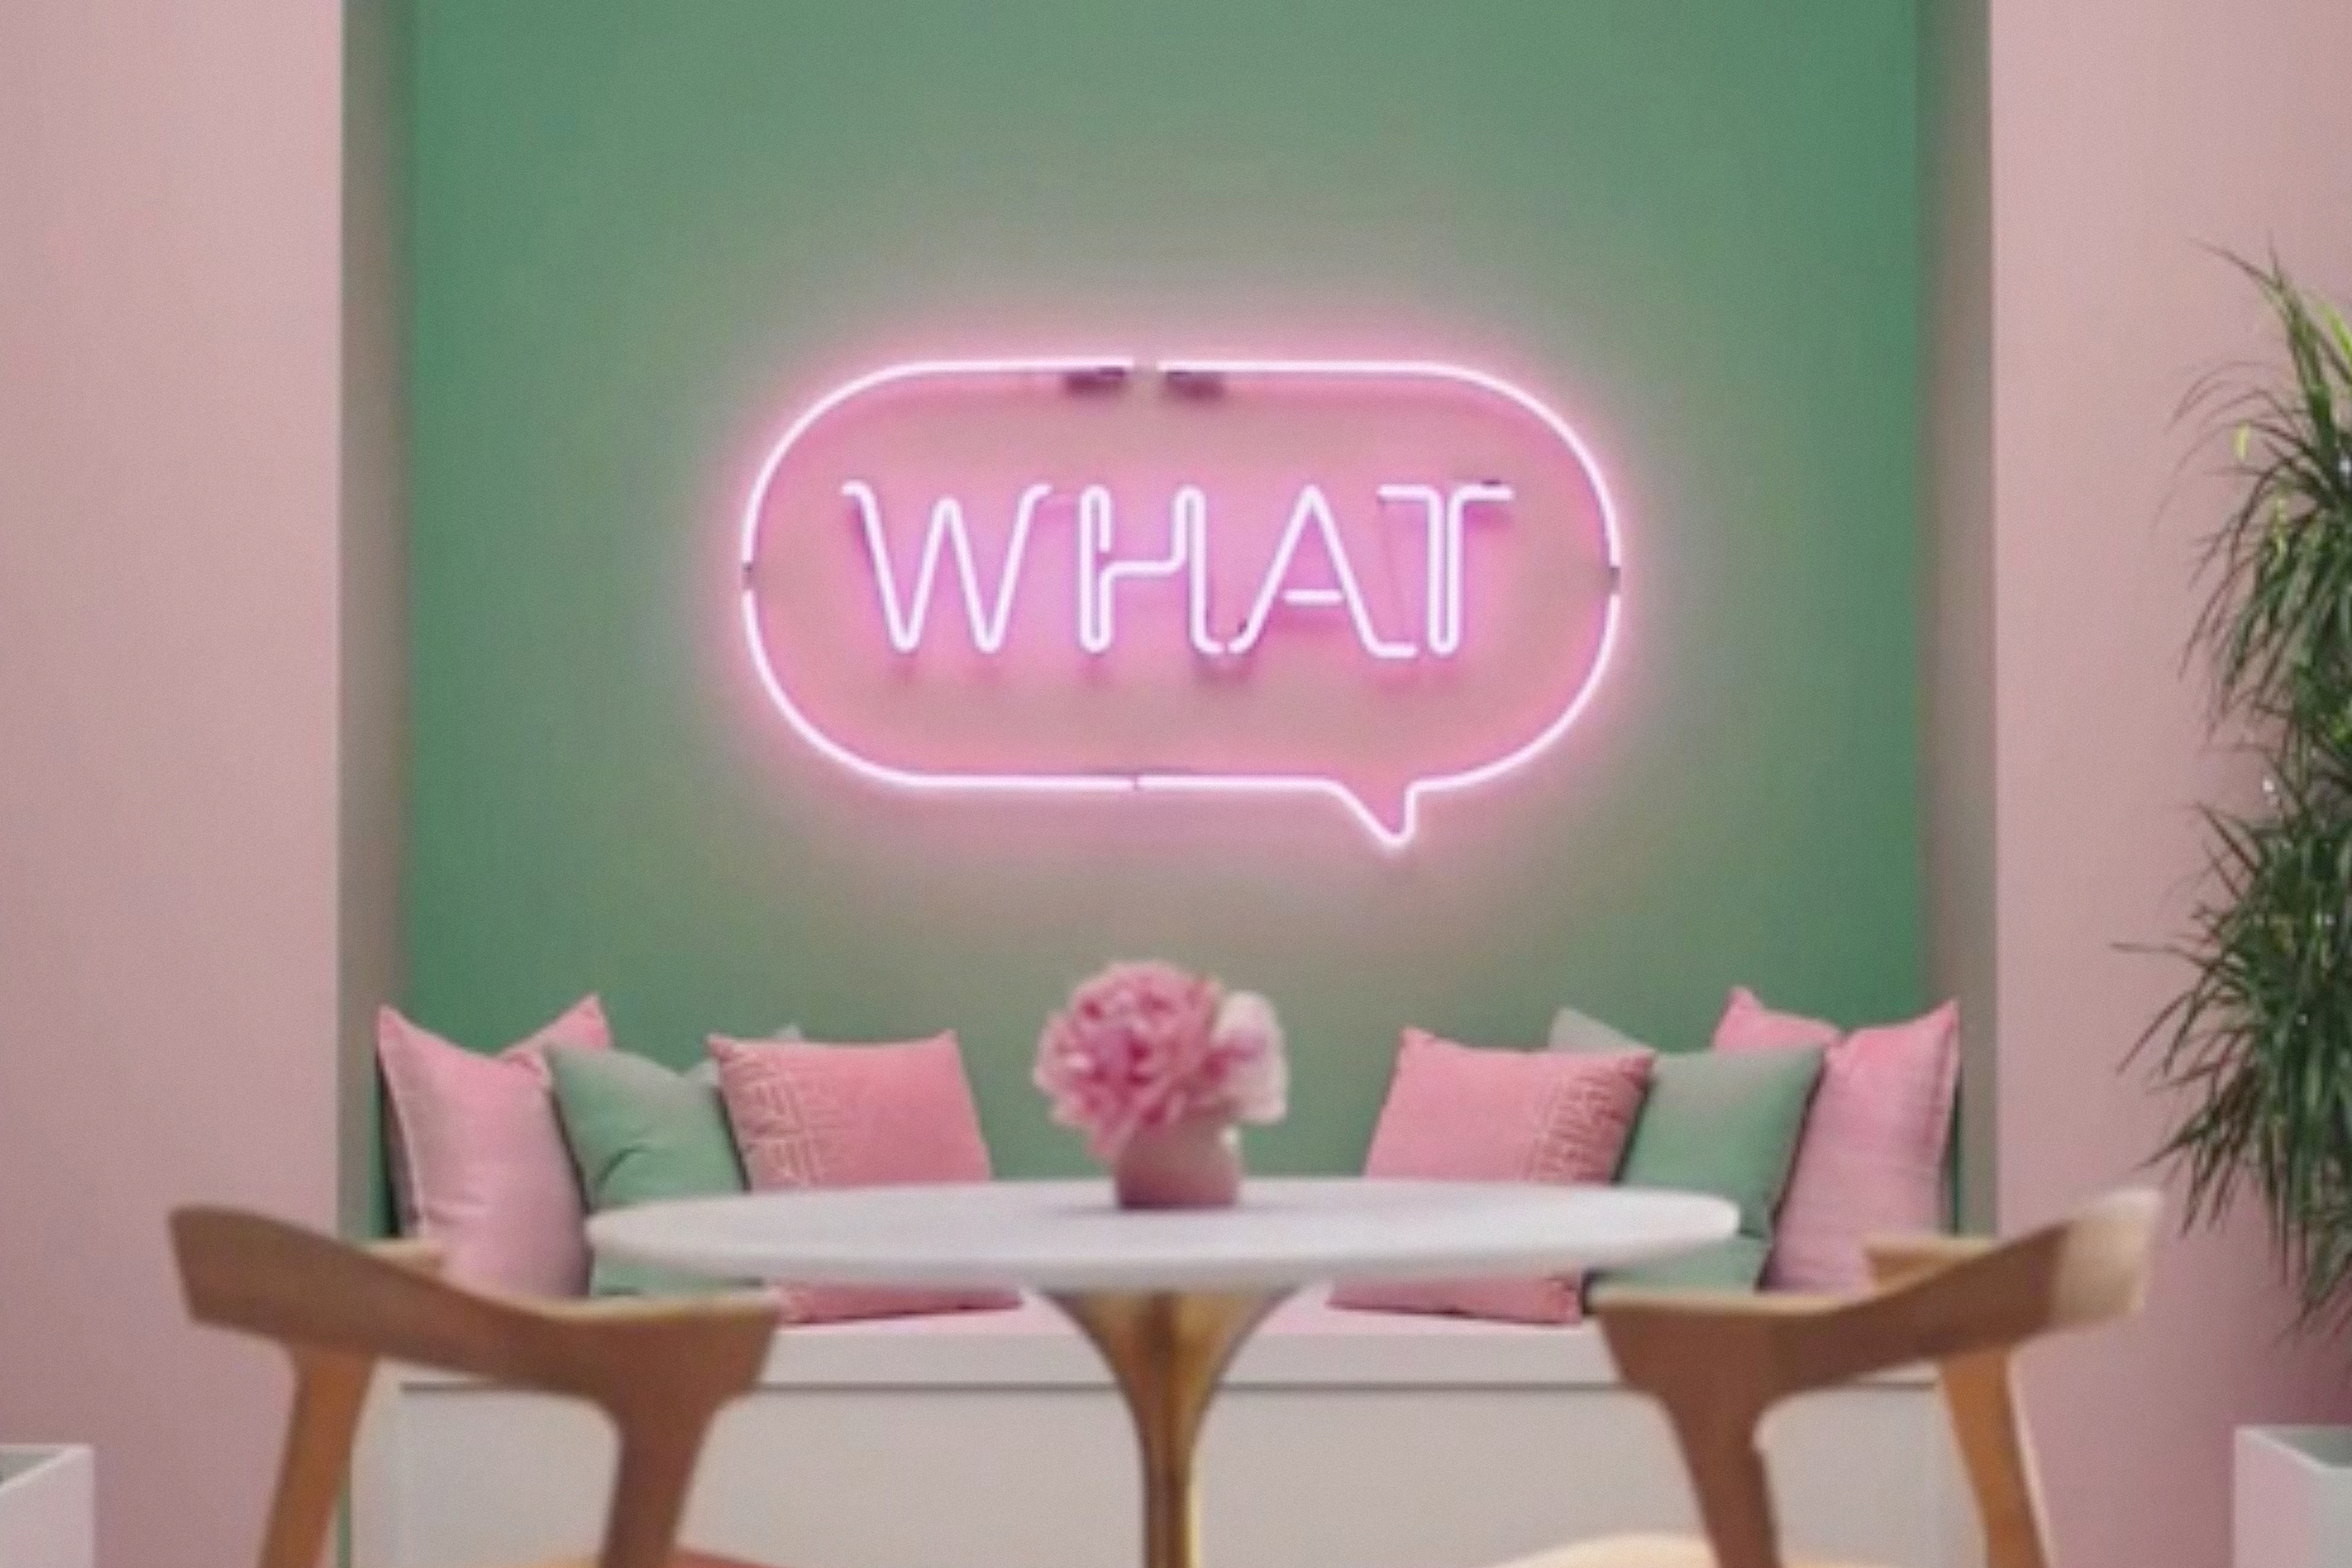 Watch the newest commercials on TV from Spectrum Mobile, Sherwin-Williams, VW and more